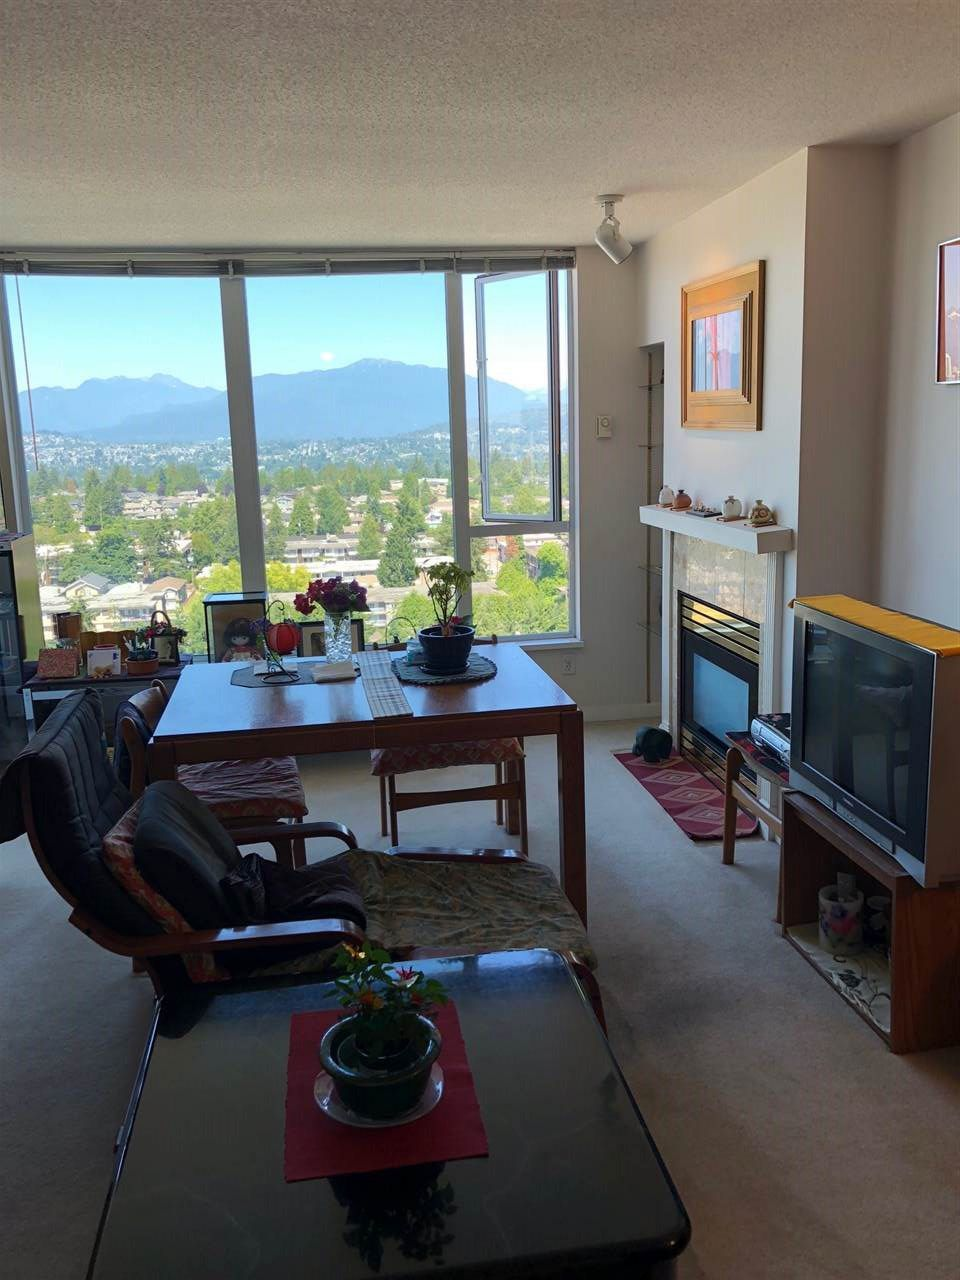 """Main Photo: 2002 7077 BERESFORD Street in Burnaby: Highgate Condo for sale in """"CITY CLUB IN THE PARK"""" (Burnaby South)  : MLS®# R2359684"""